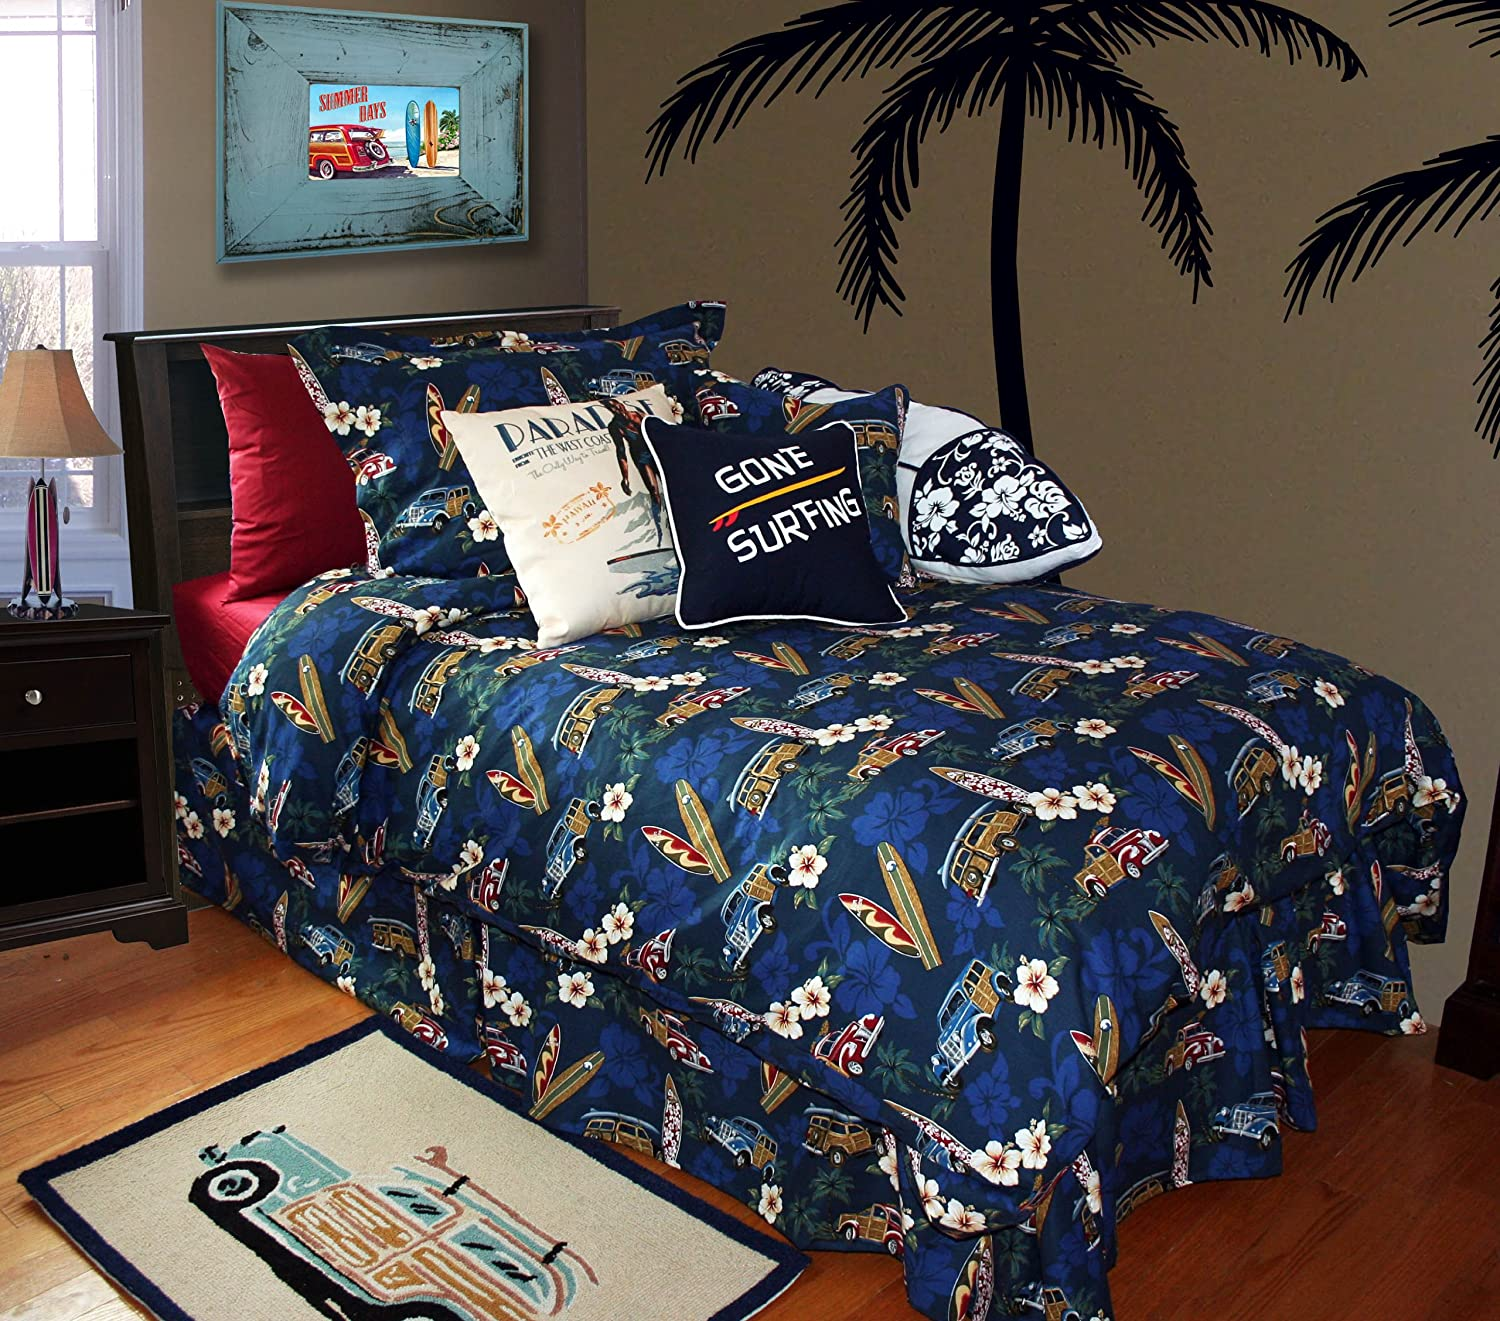 Amazon.com: Surf Duvet Set By Dean Miller -- Tradewind Trolly ... : surf quilt cover - Adamdwight.com